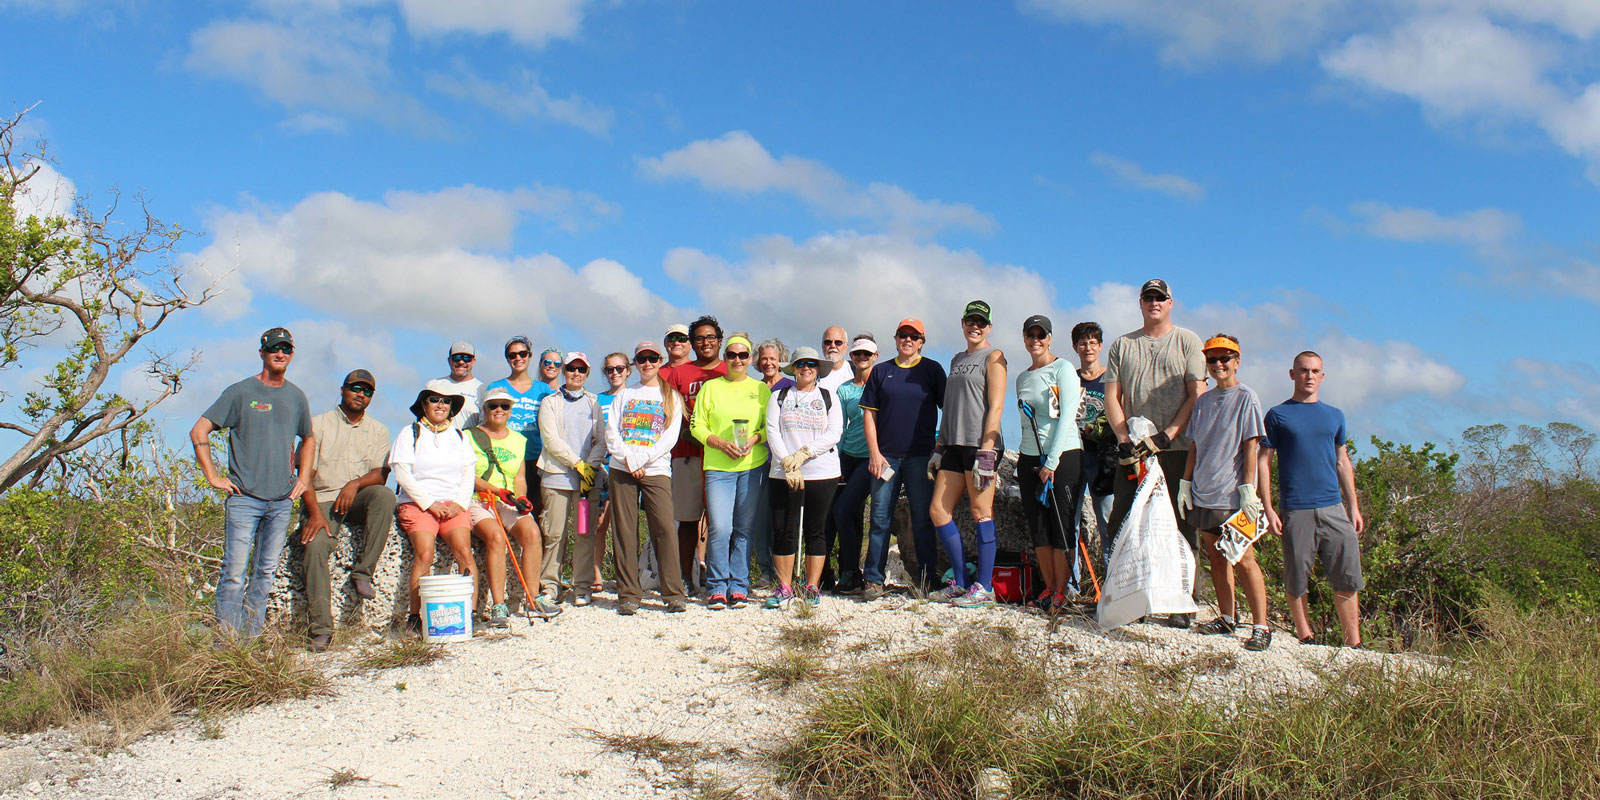 Volunteer Beach Clean Up California